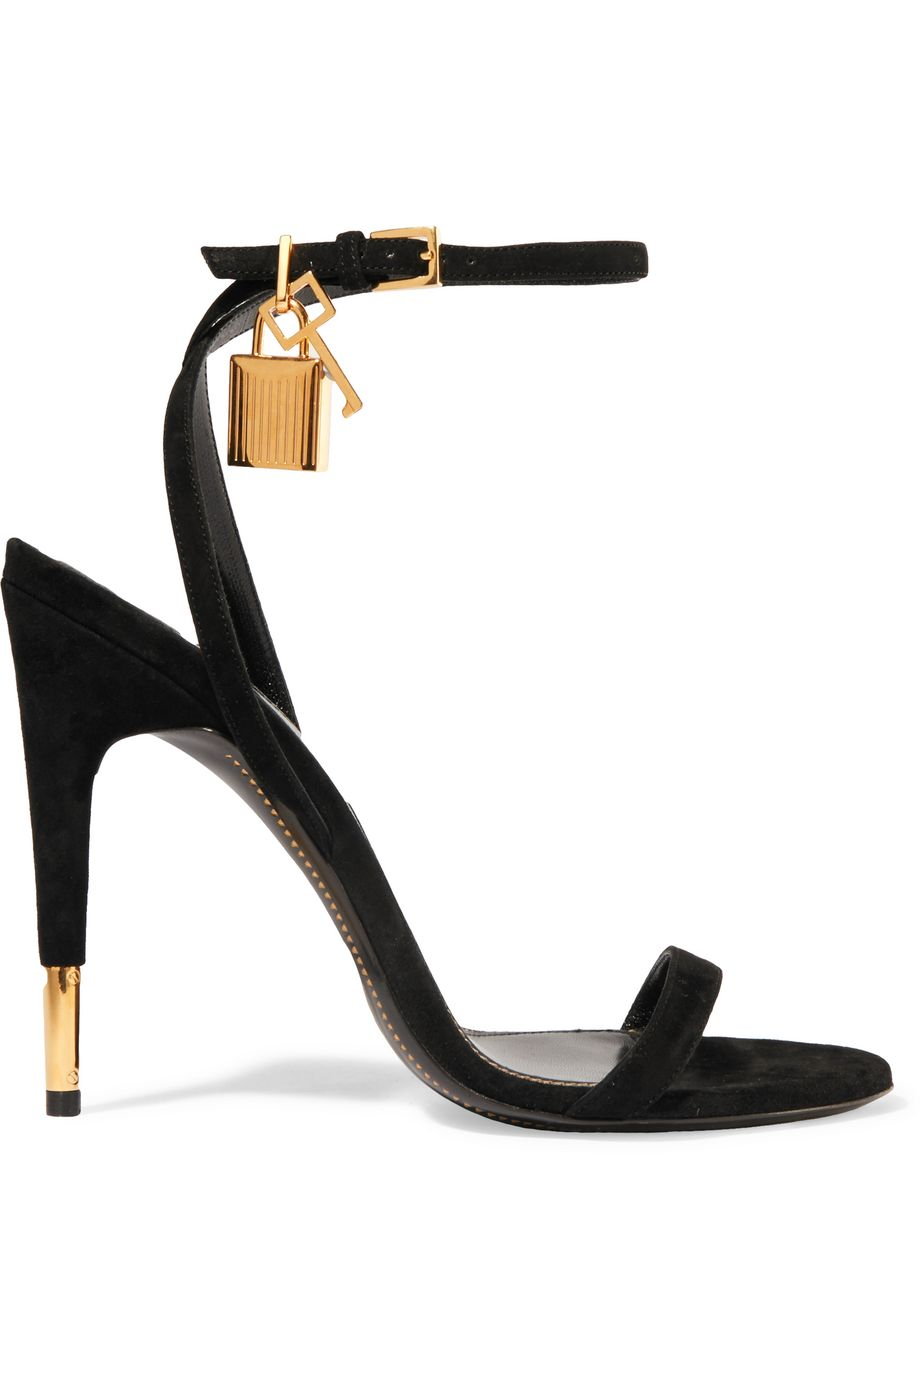 Suede sandals by TOM FORD for $356 Kim Kardashian Shoes Exact Product